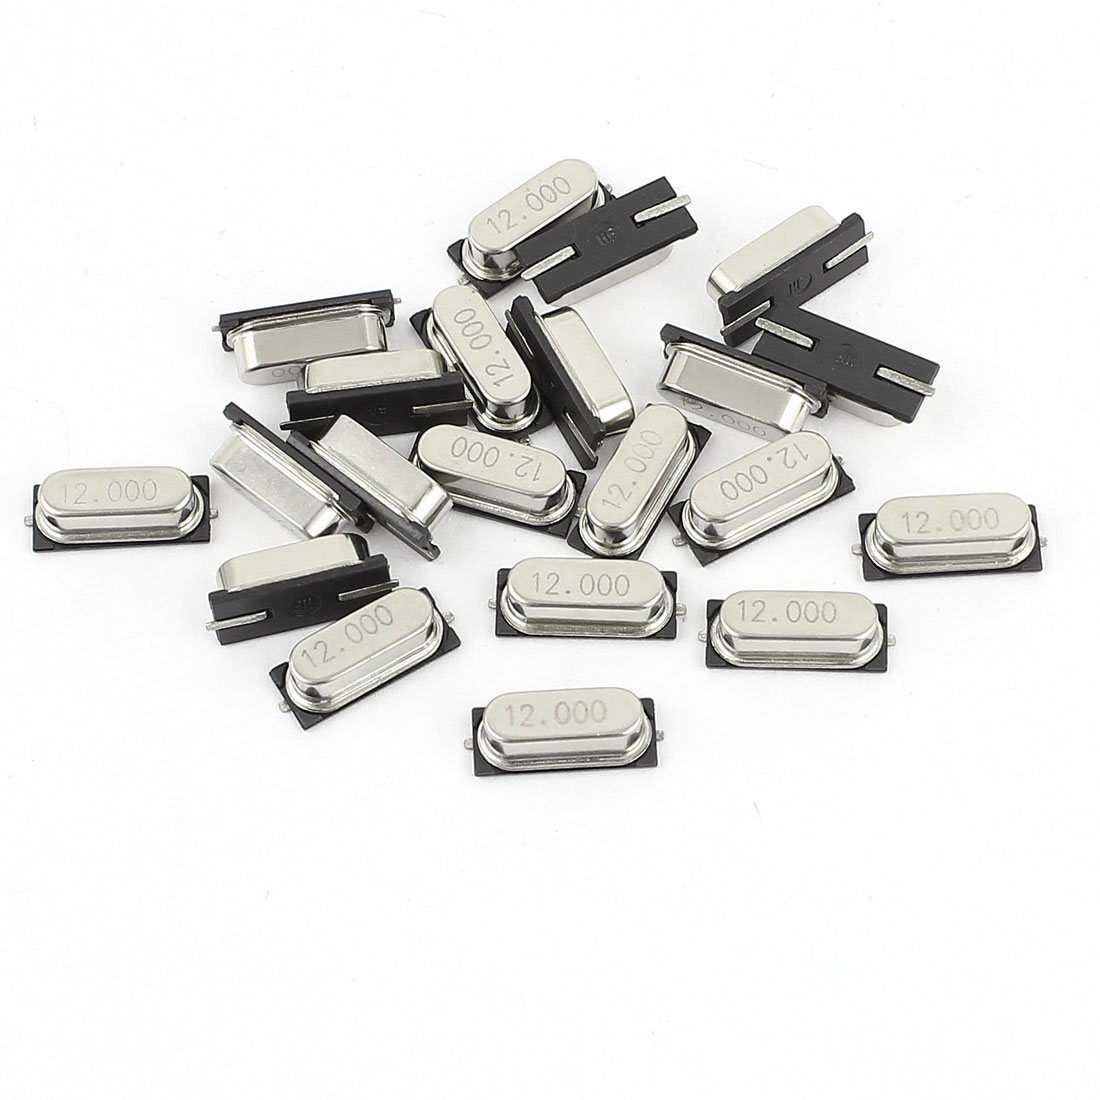 20 Pieces HC-49S SMD Type Quartz Crystal Oscillators 12MHz 12.000Mhz Silver Tone